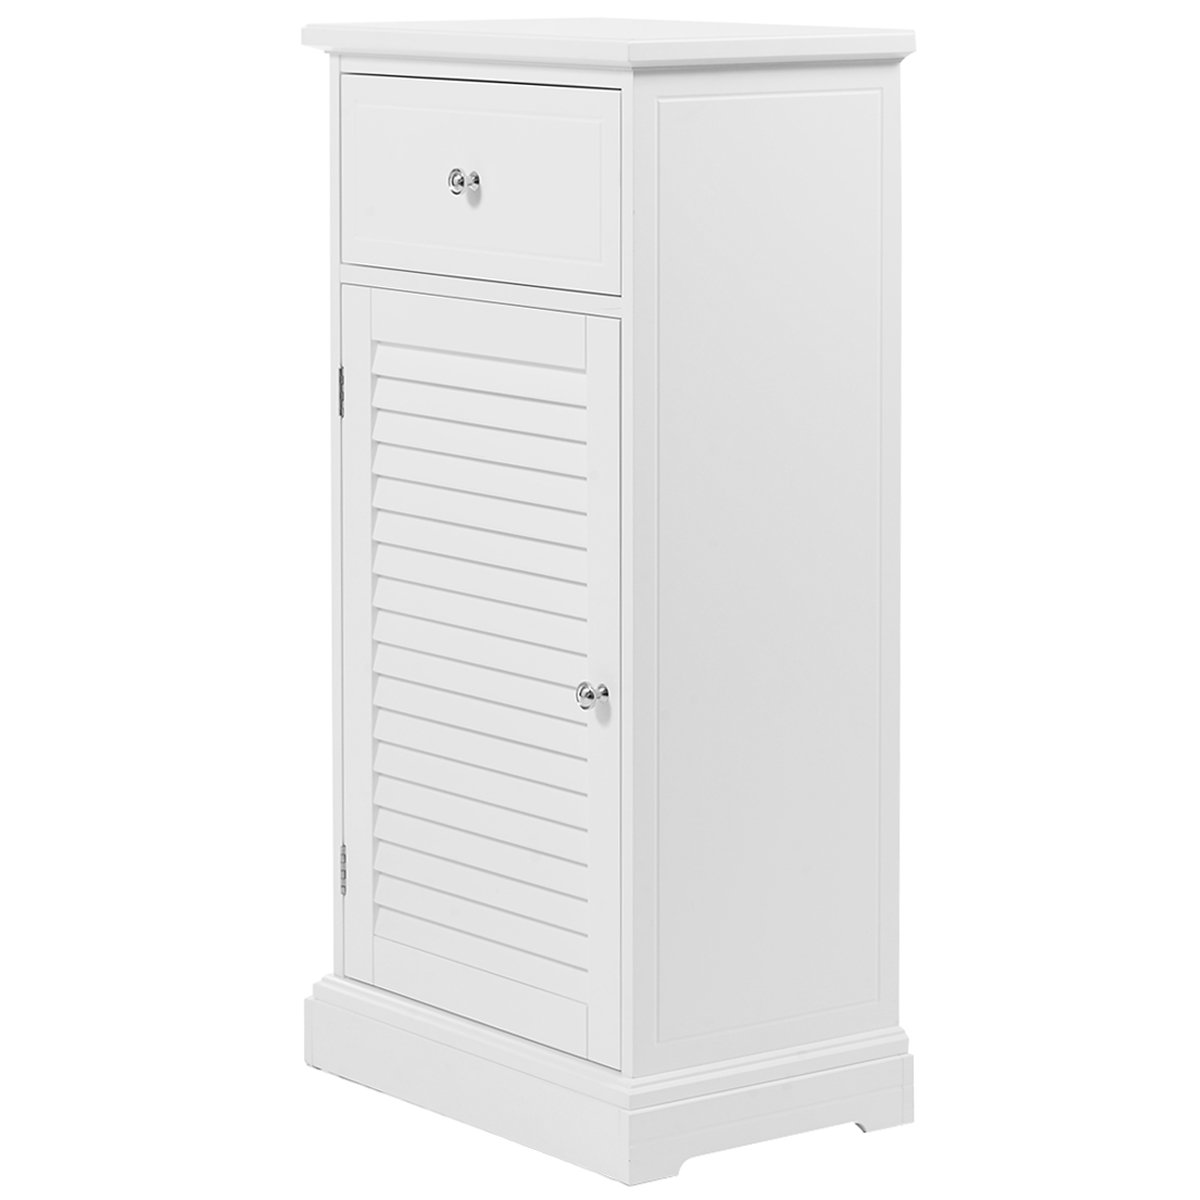 Giantex White Storage Floor Cabinet Wall Shutter Door Bathroom Organizer Cupboard Shelf